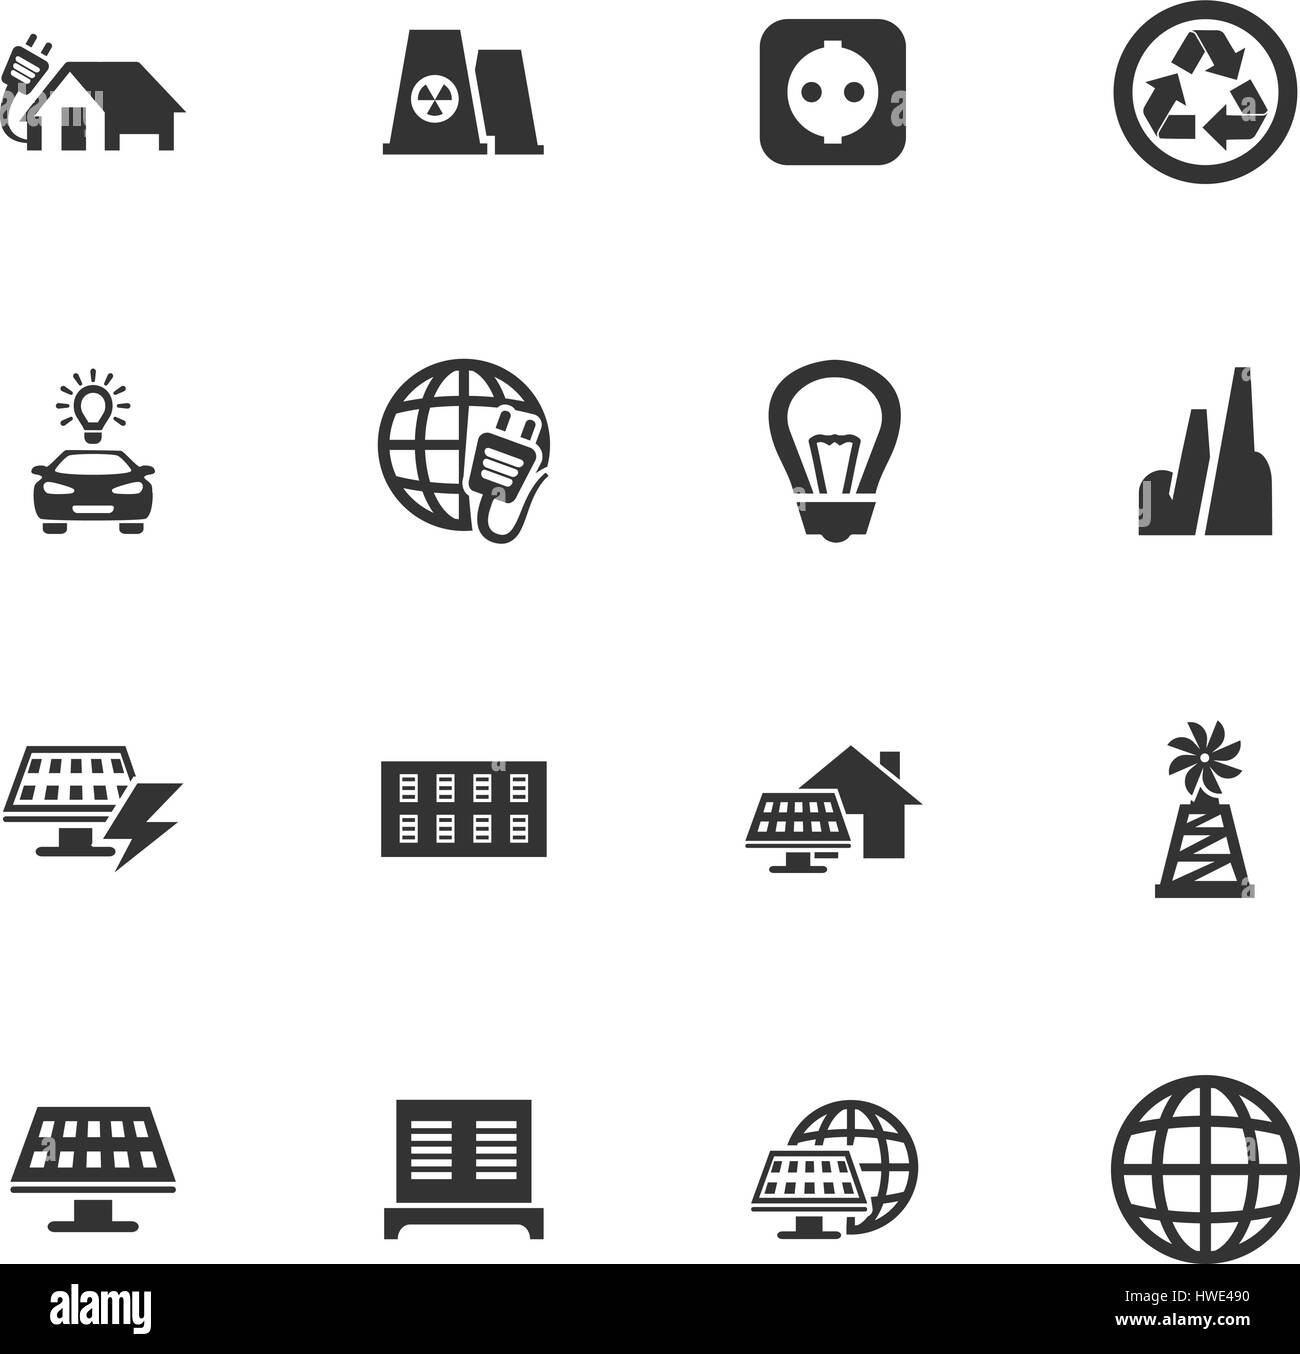 Alternative energy icons set for web sites and user interface - Stock Image